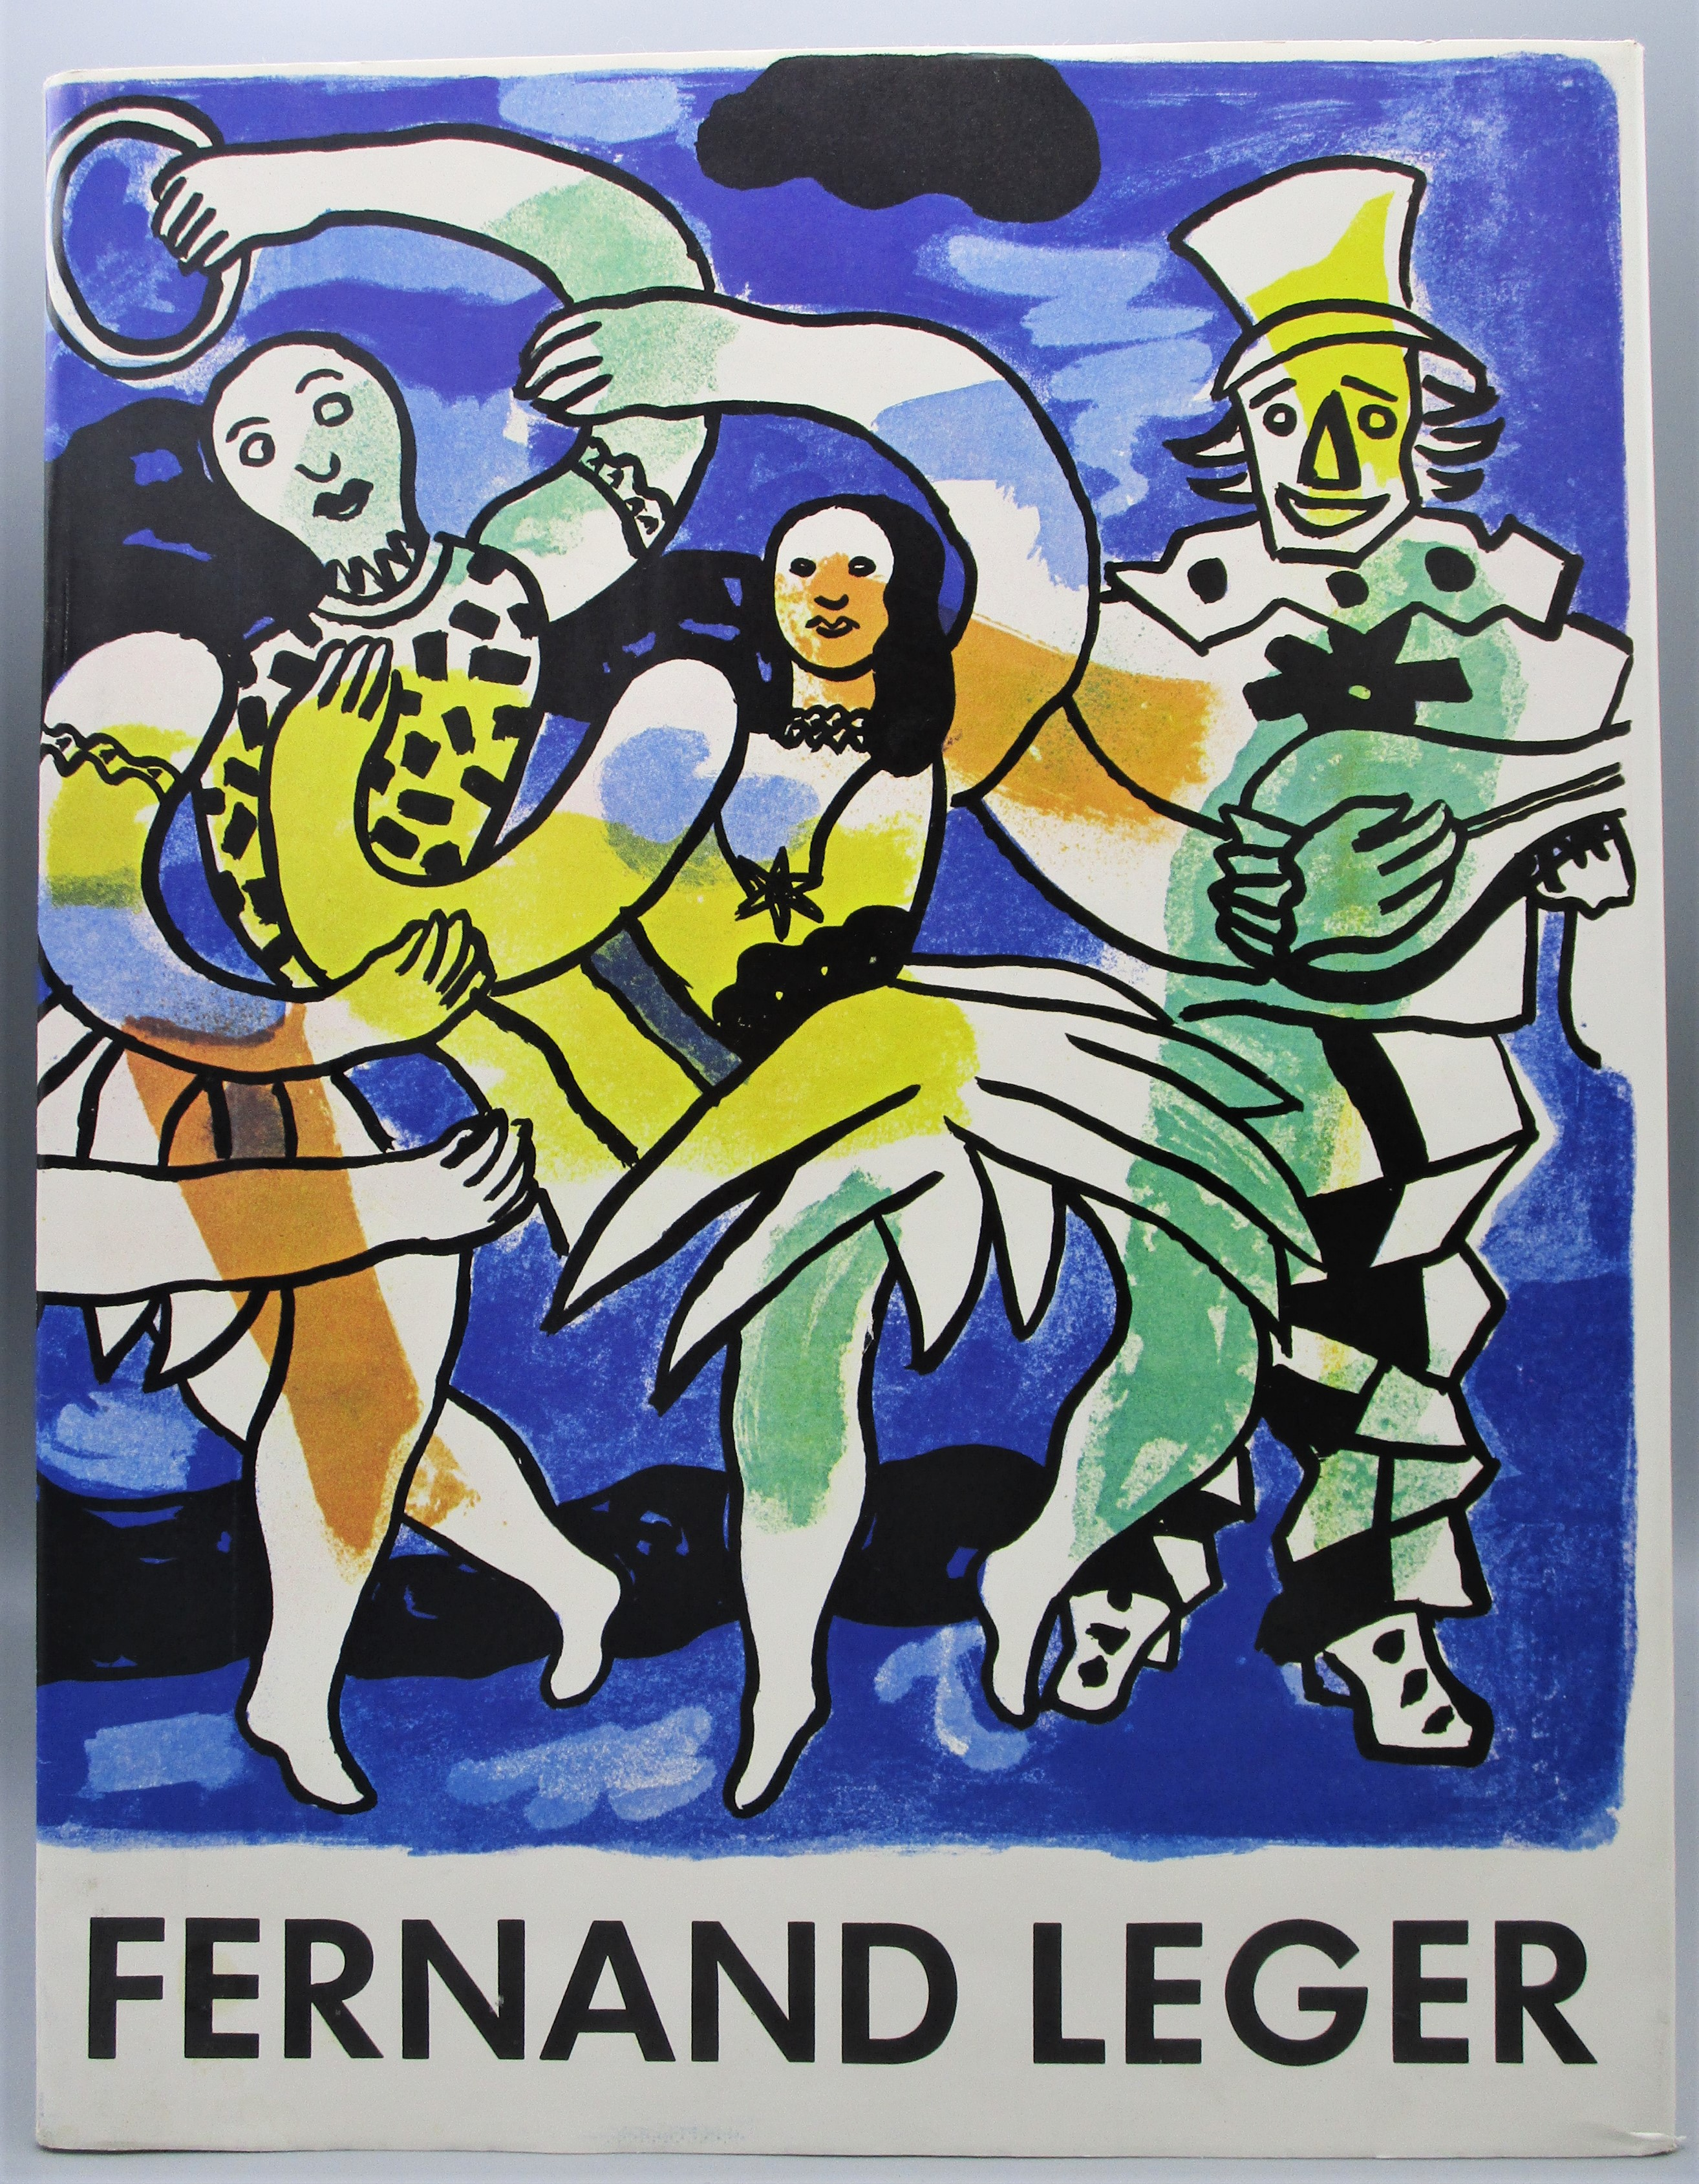 FERNAND LEGER: COMPLETE GRAPHIC WORK, by Lawrence Saphire - 1978 [Ltd Ed]